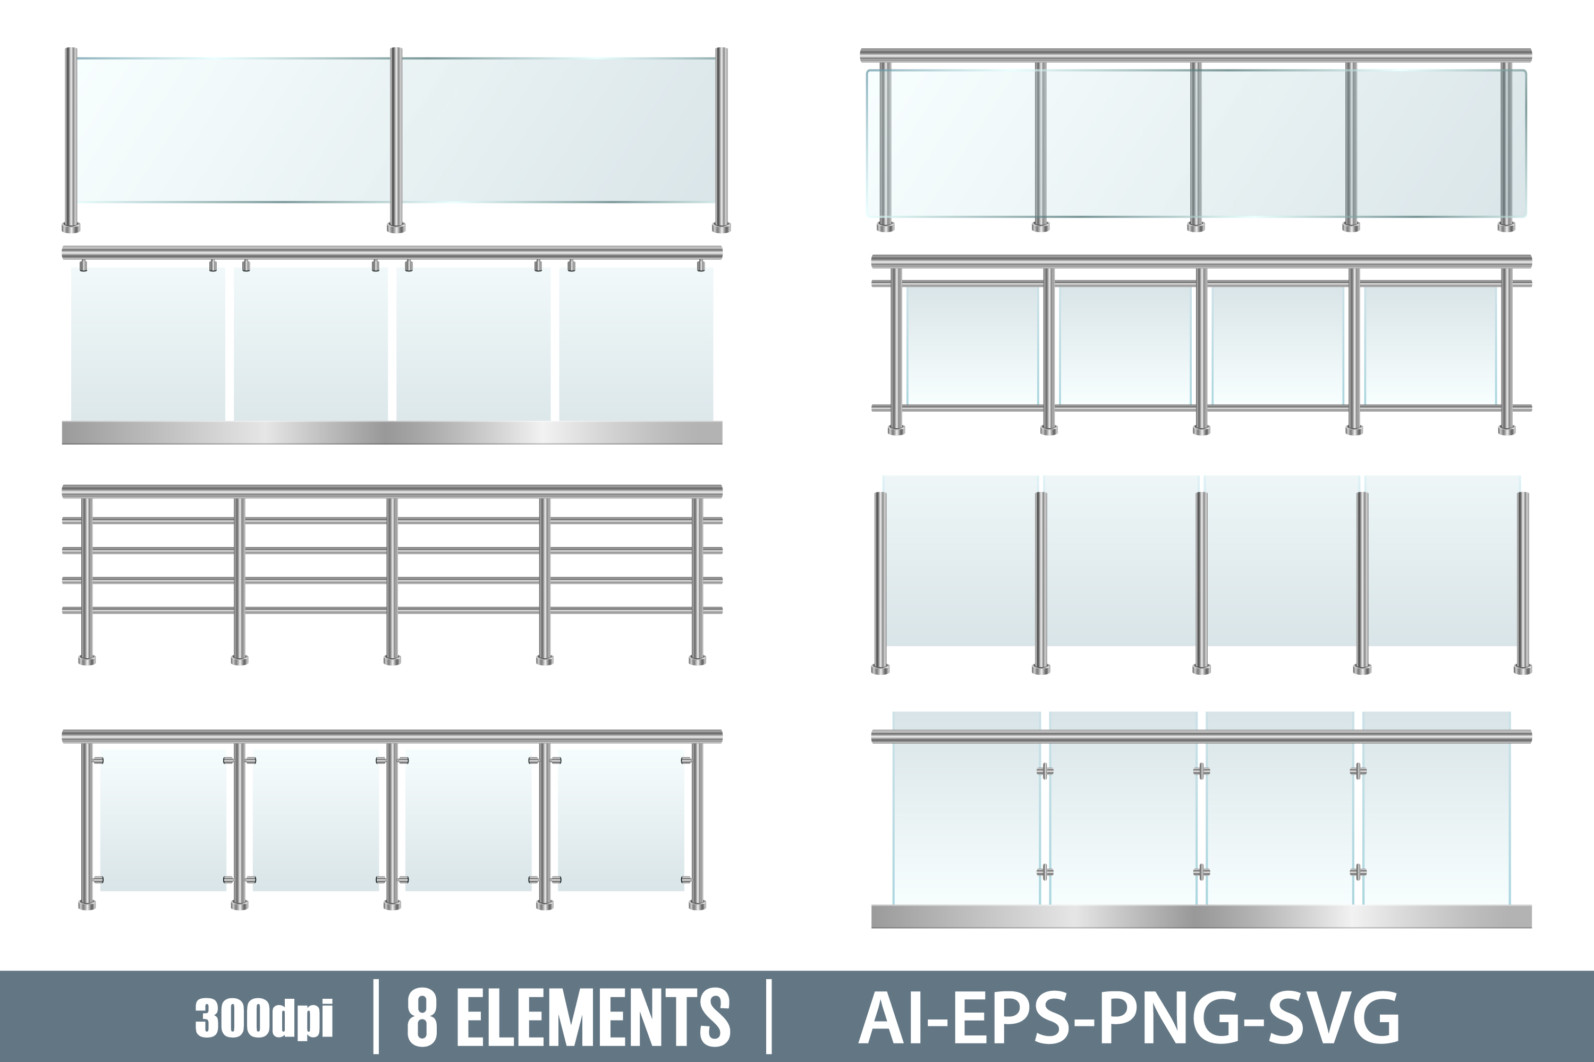 Glass railing clipart vector design illustration. Glass railing set. Vector Clipart Print - GLASS BALUSTRADE scaled -